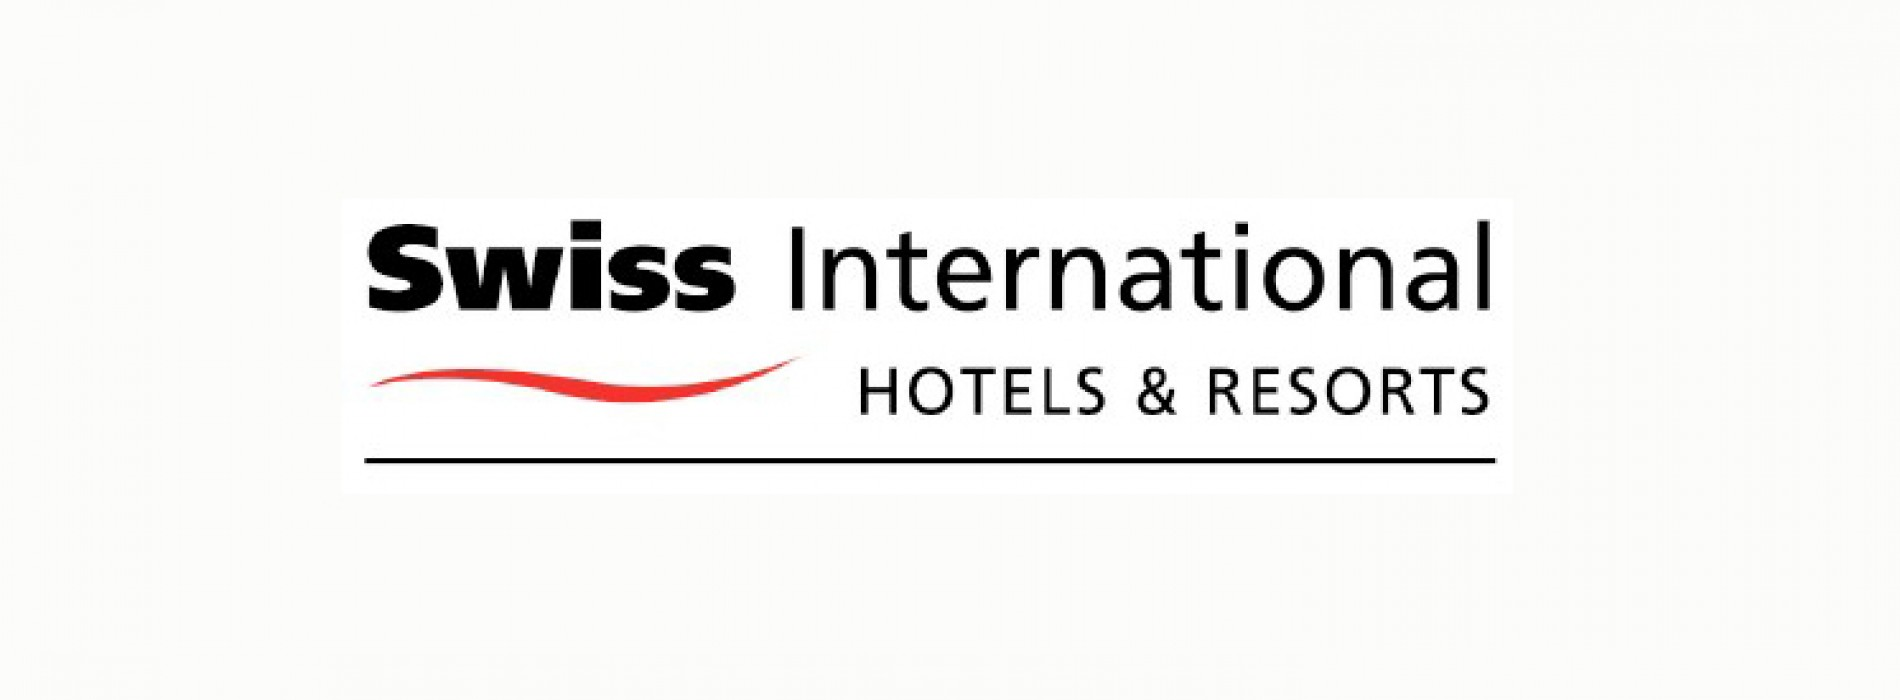 Swiss International and IDS Next enters into partnership